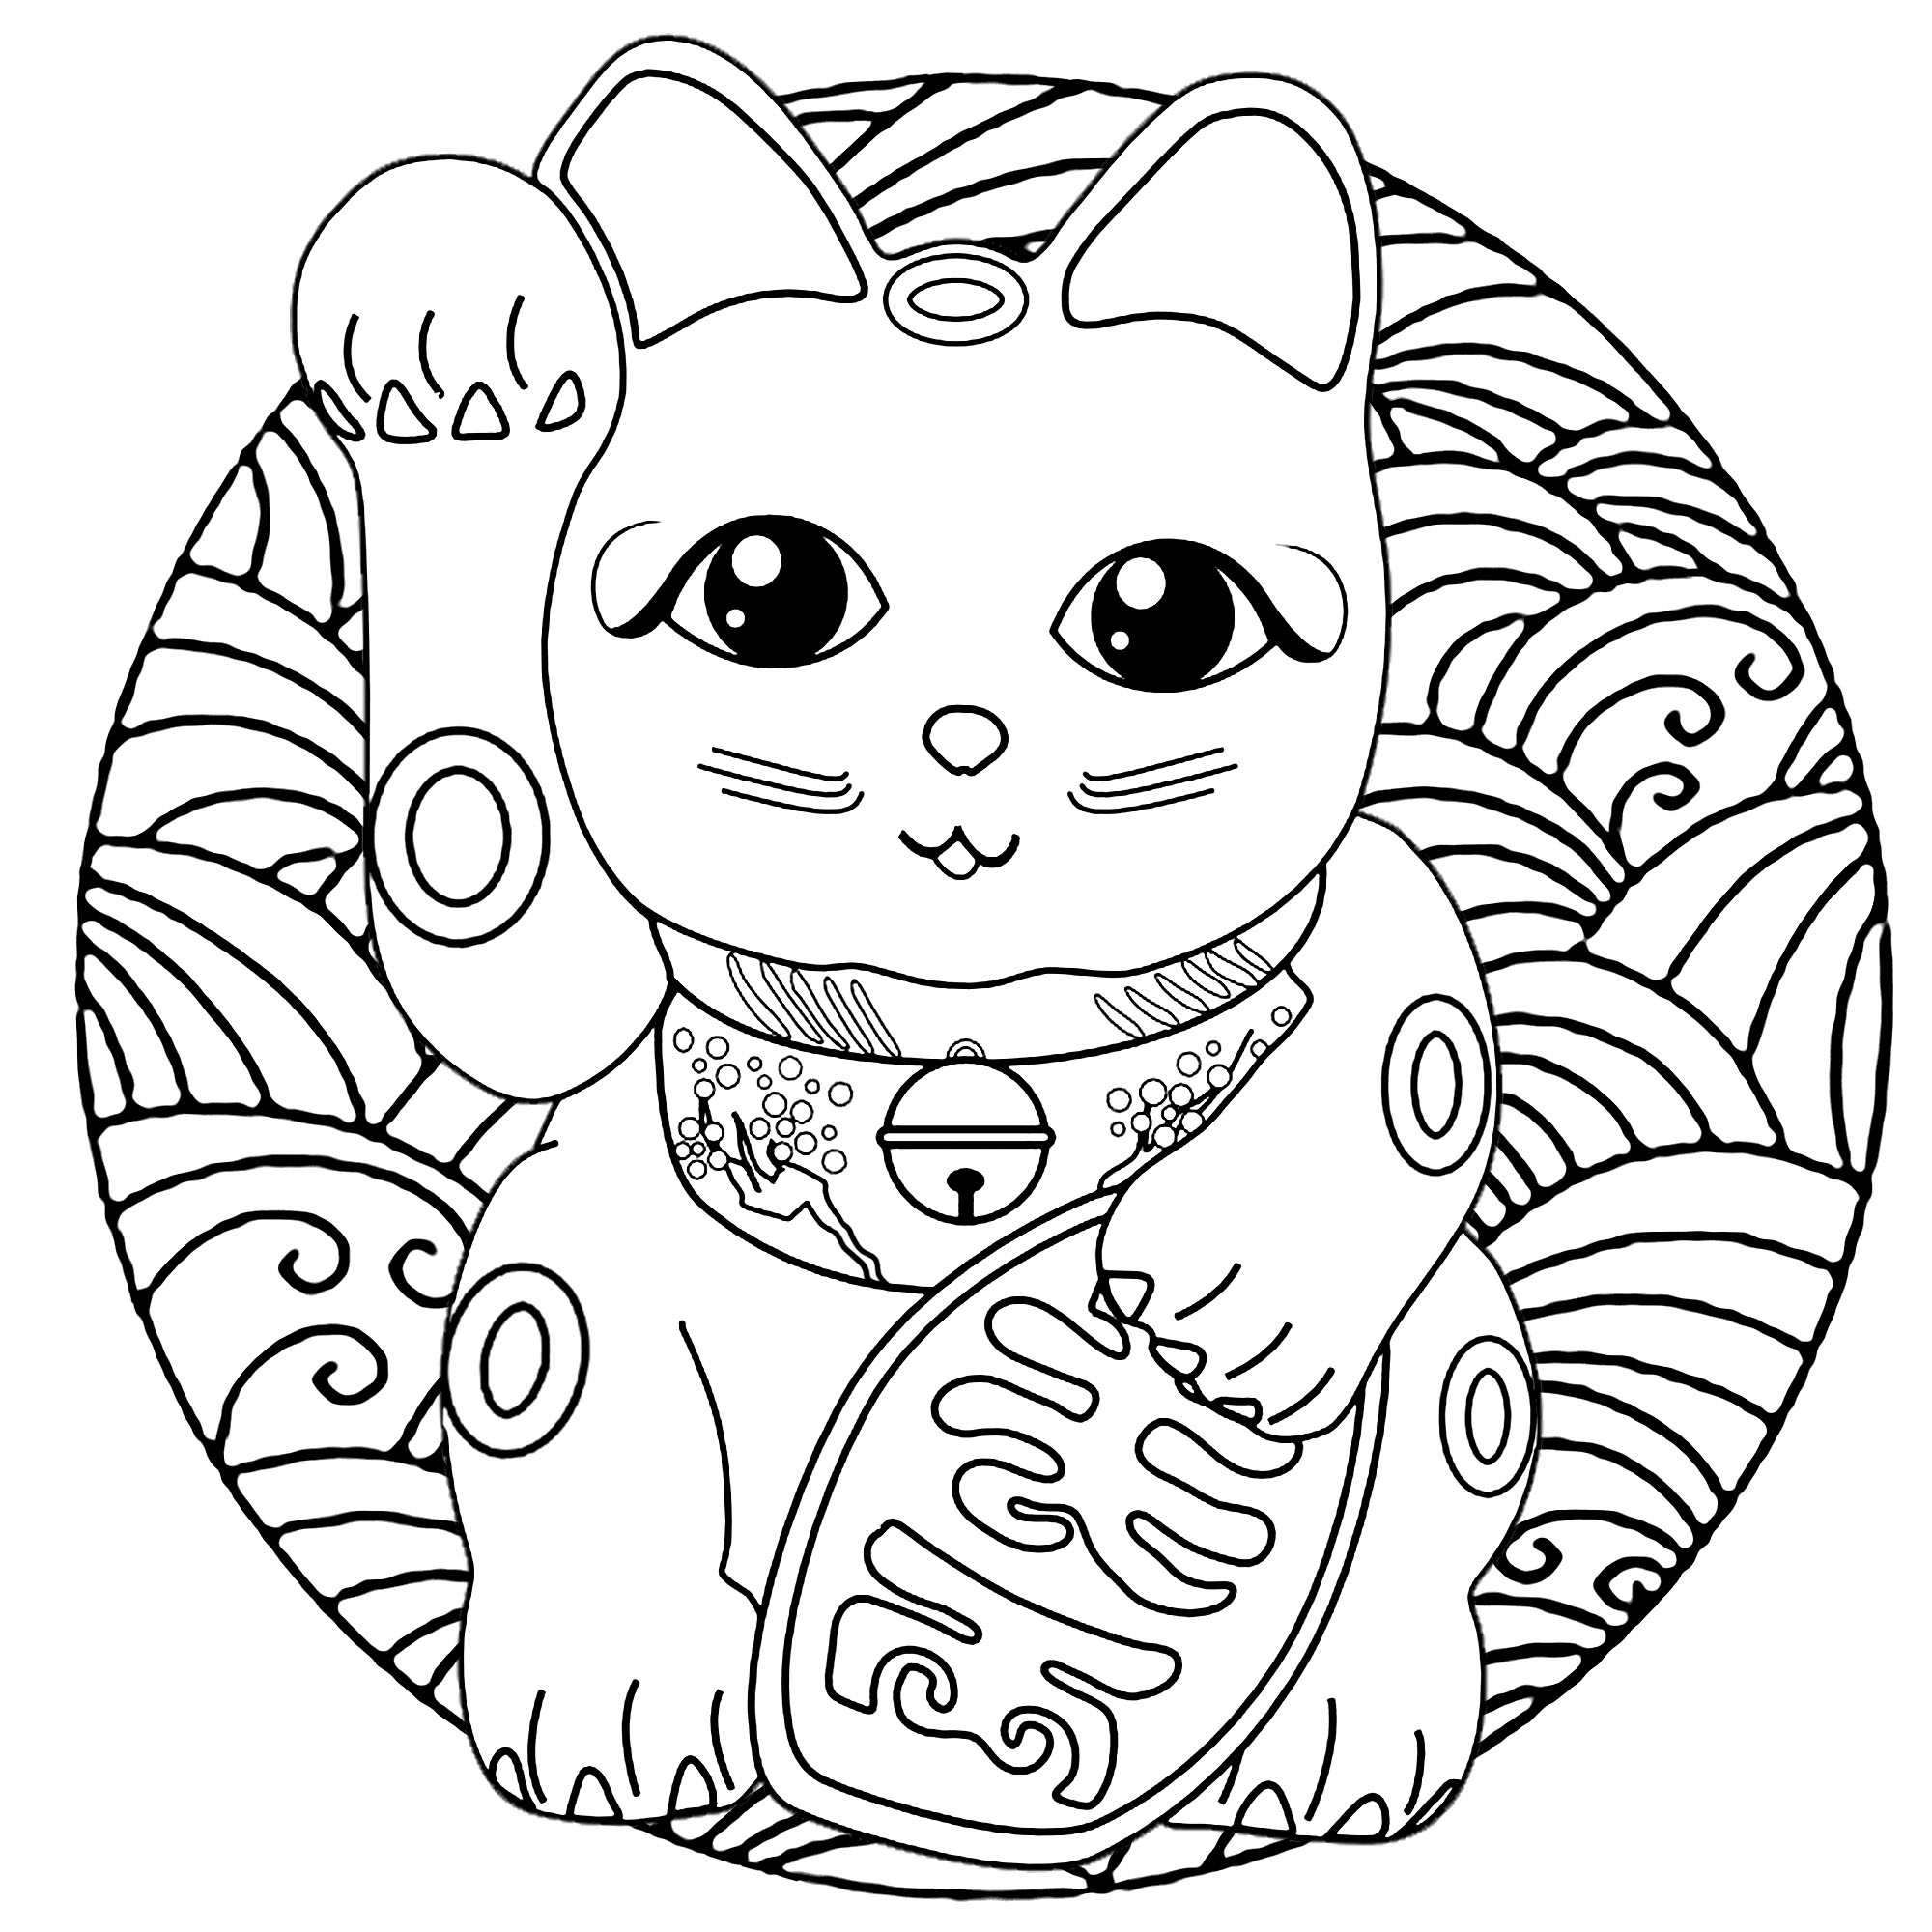 Lucky Charms Coloring Pages